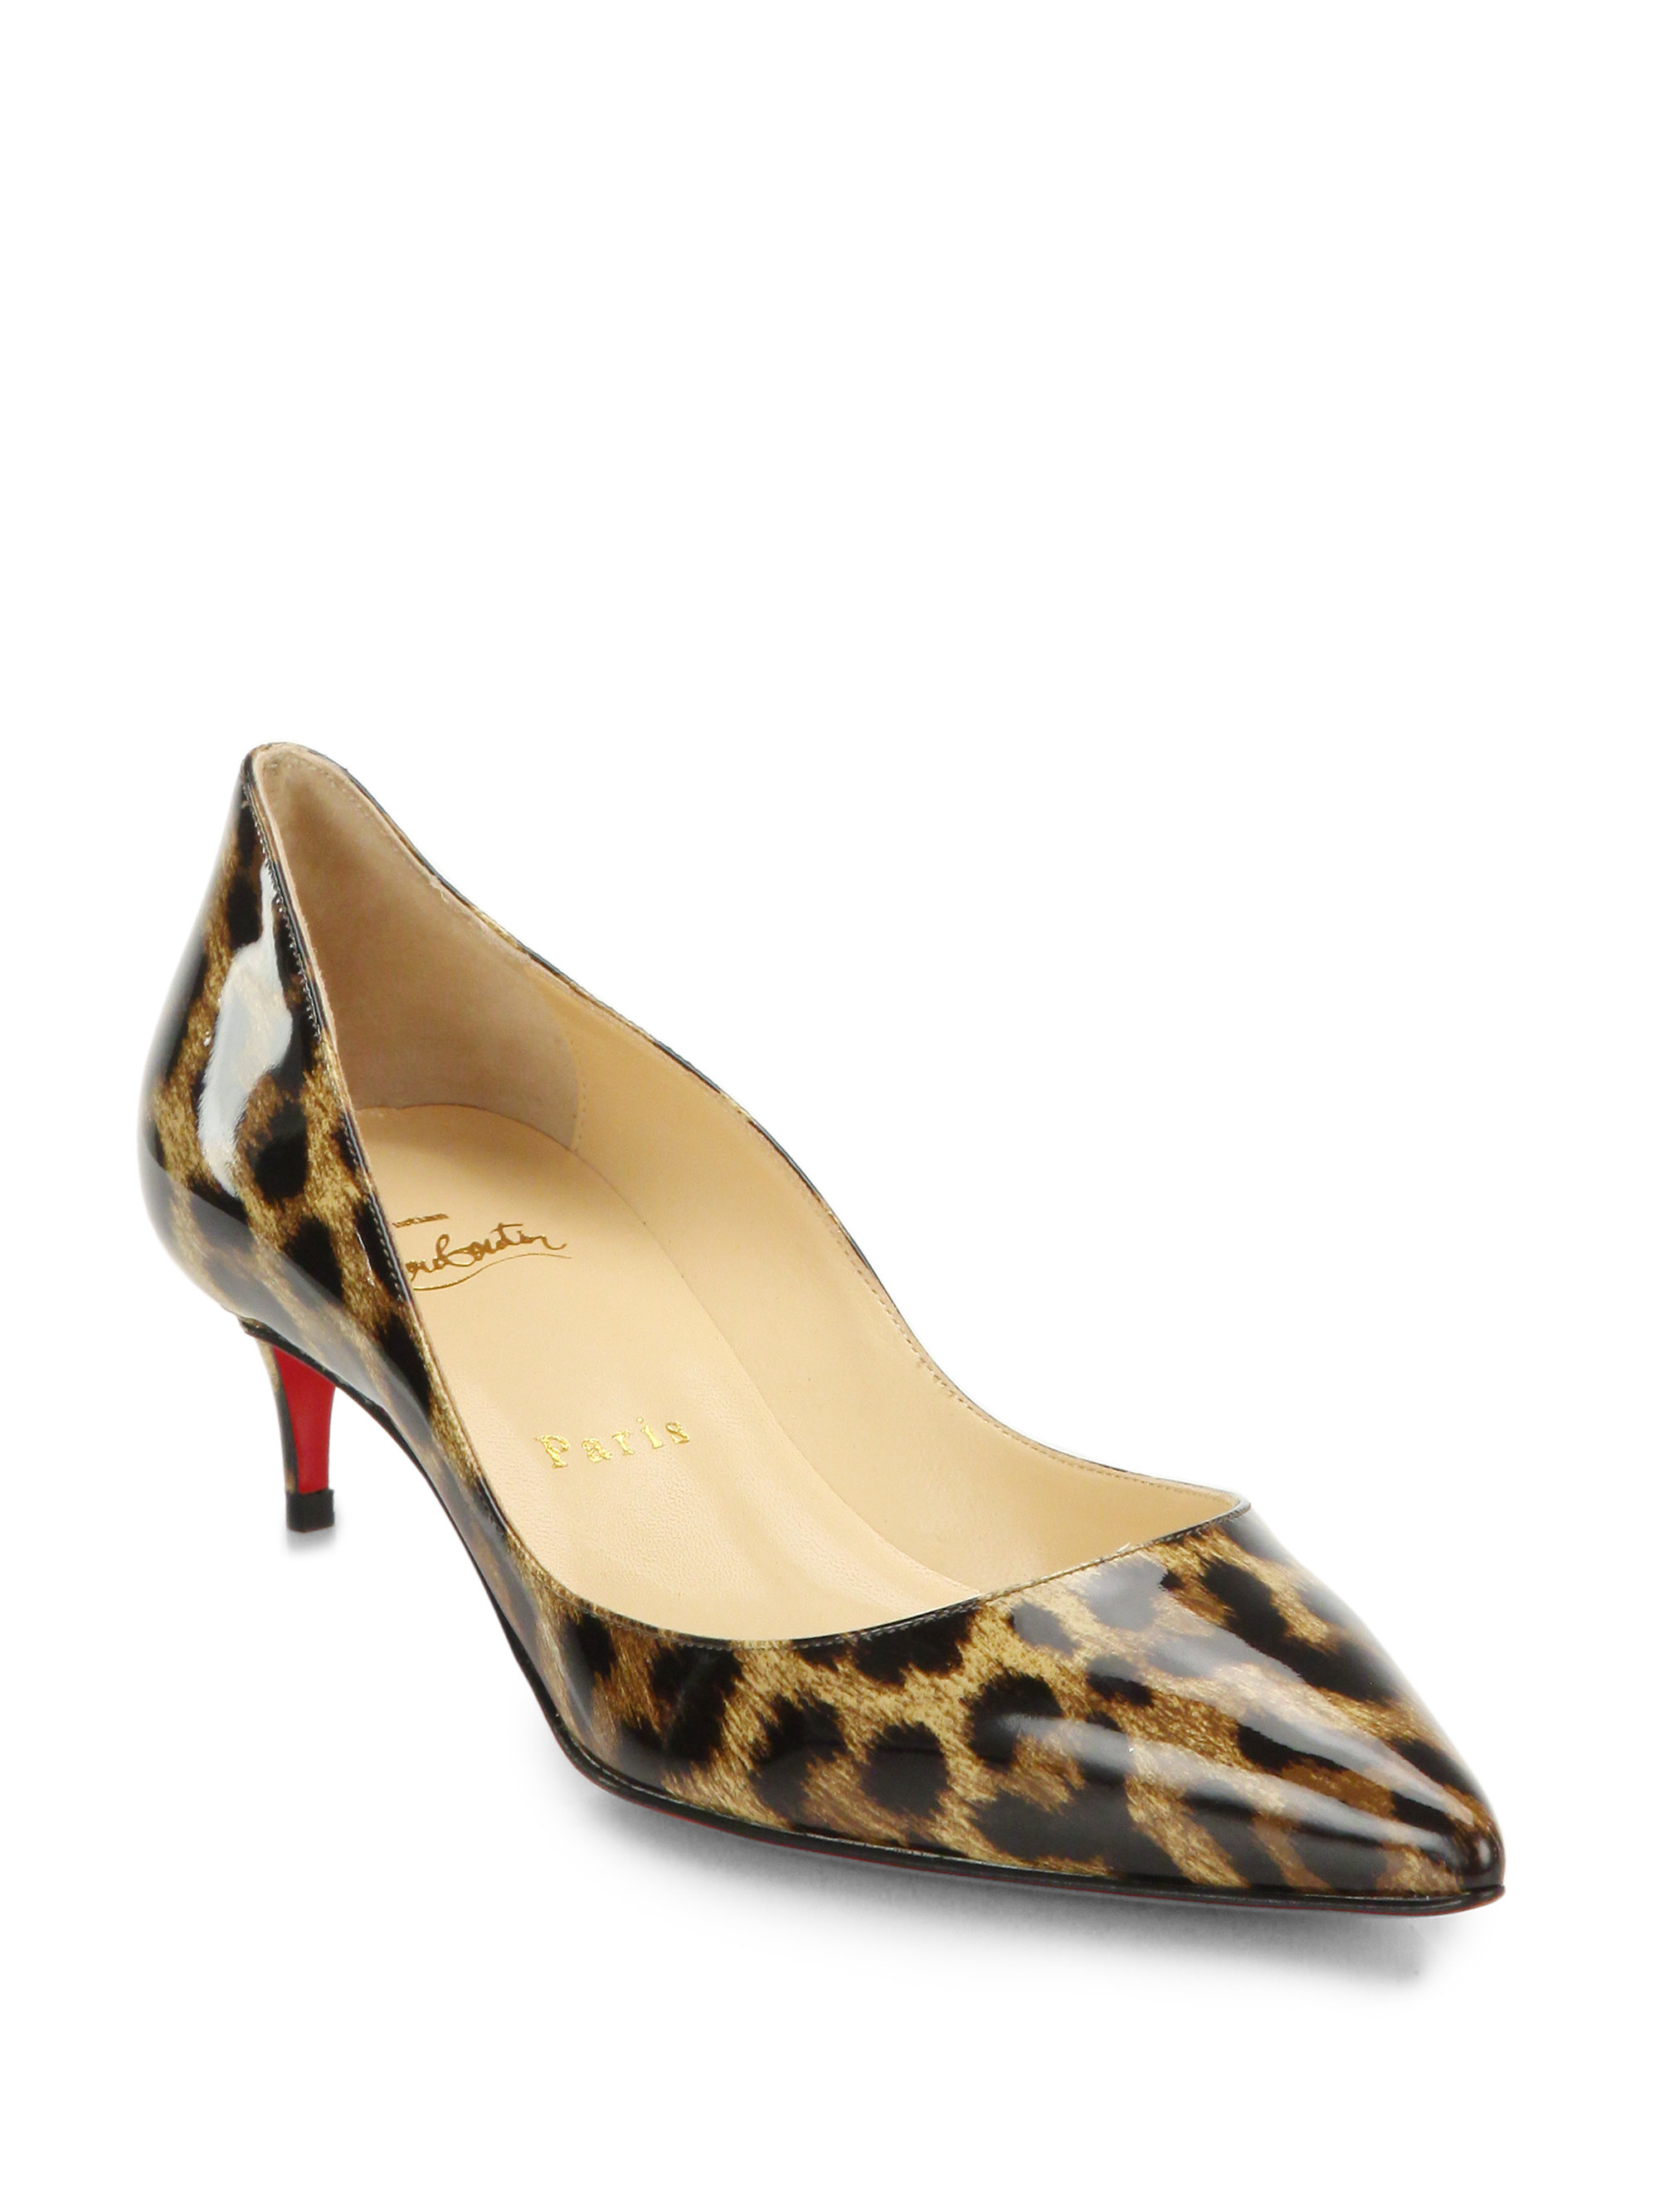 2545831bcf5a Lyst - Christian Louboutin Rocket Leopard Print Patent Leather Point ...